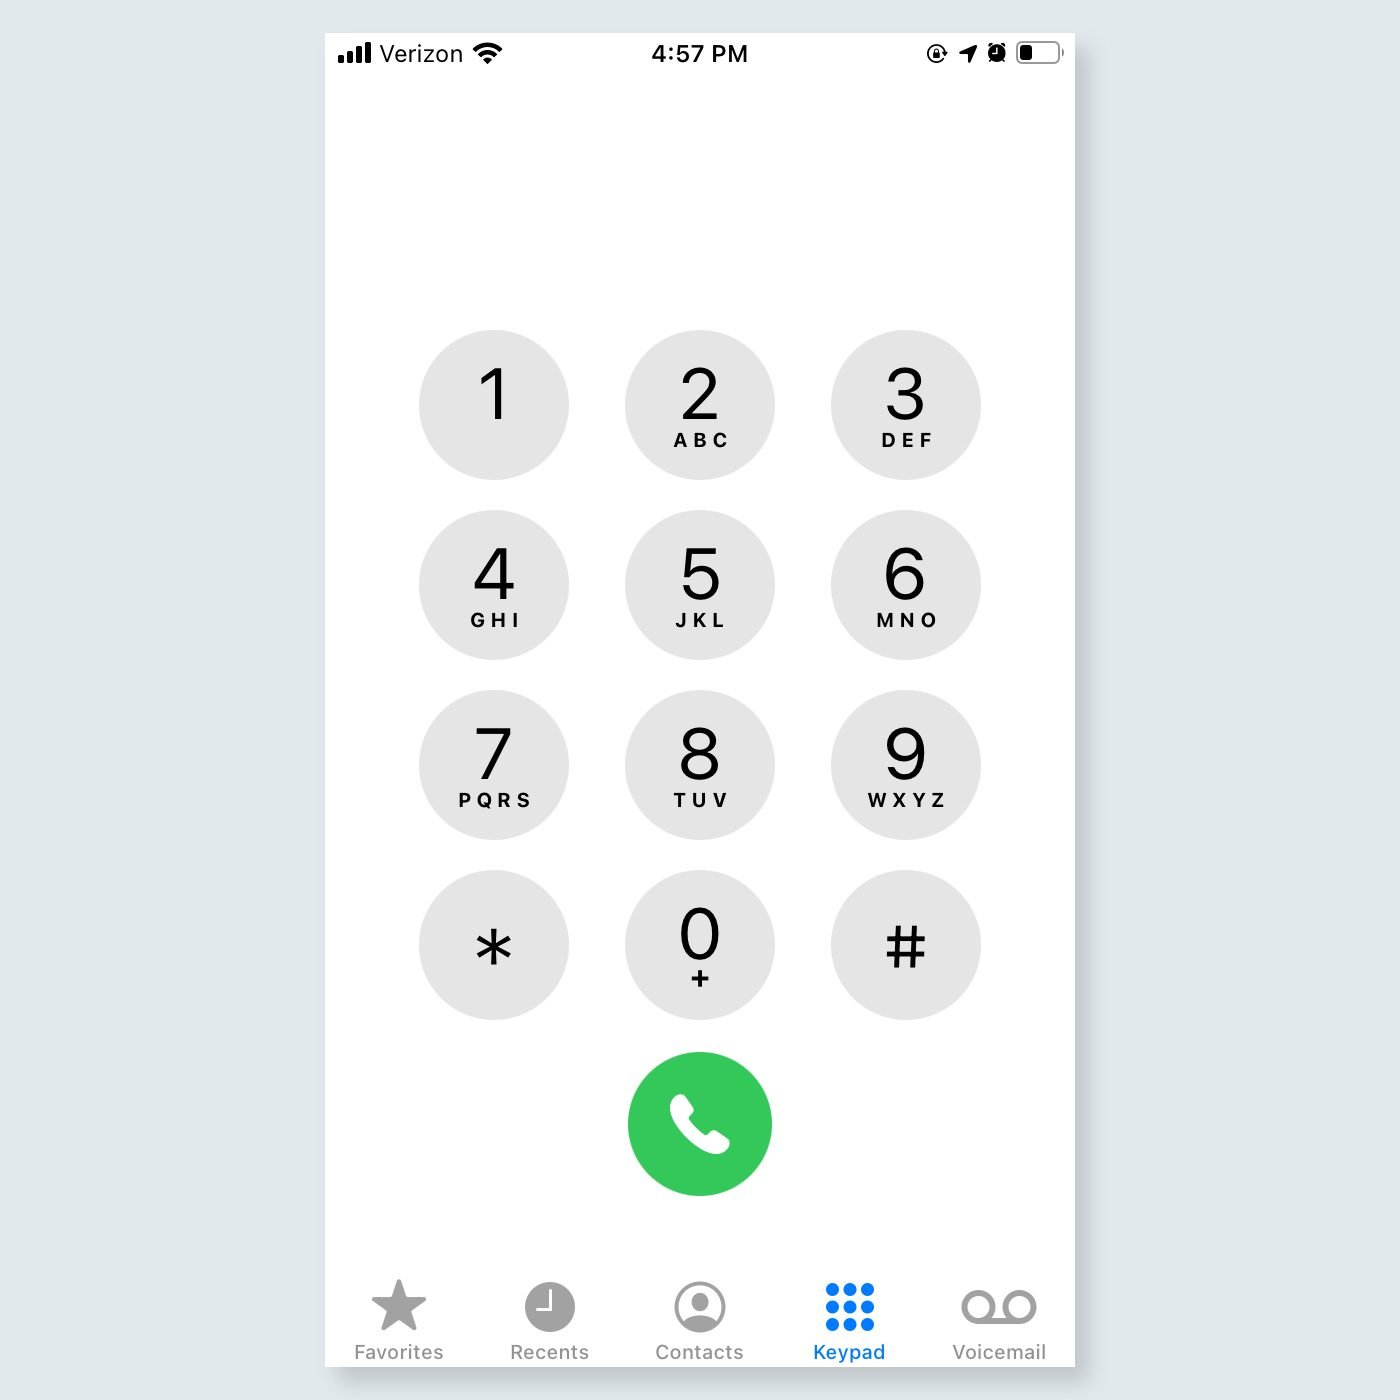 iphone tricks - Press one button to make a call